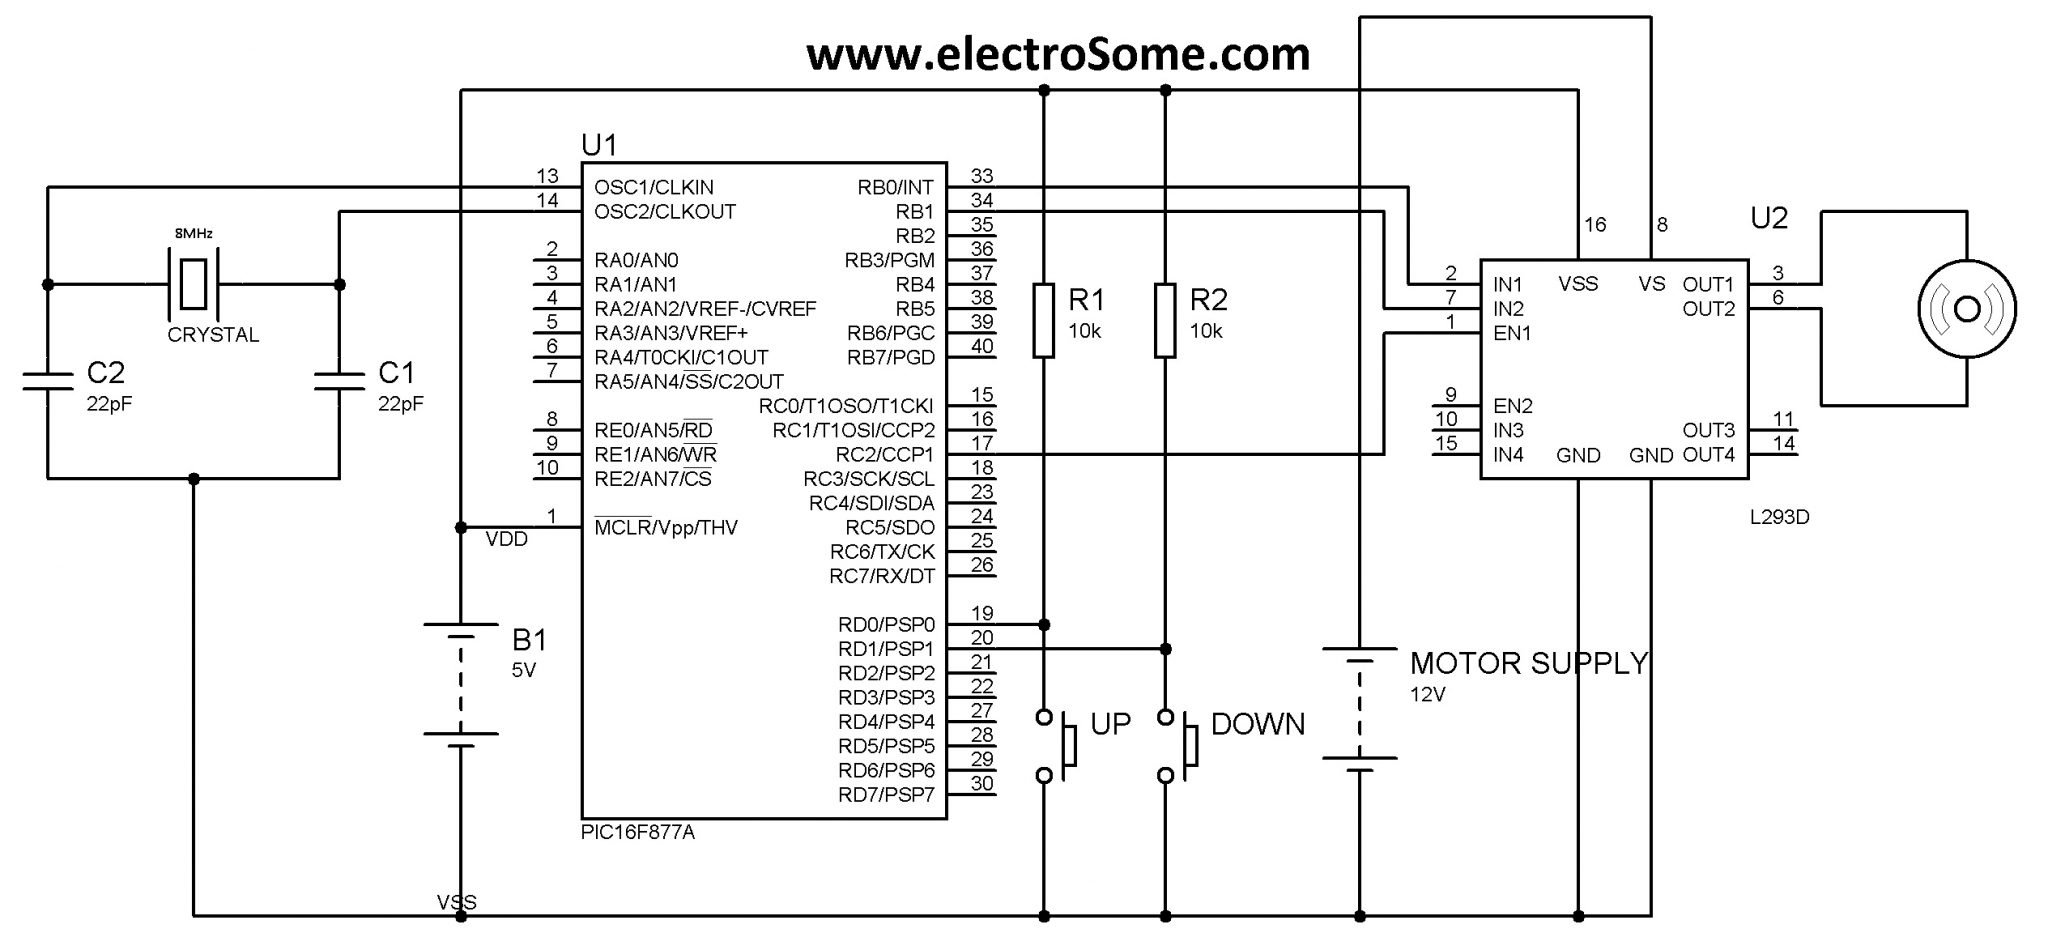 DC Motor Speed Control using PWM with PIC Microcontroller pid temperature controller wiring free wiring diagram for you \u2022